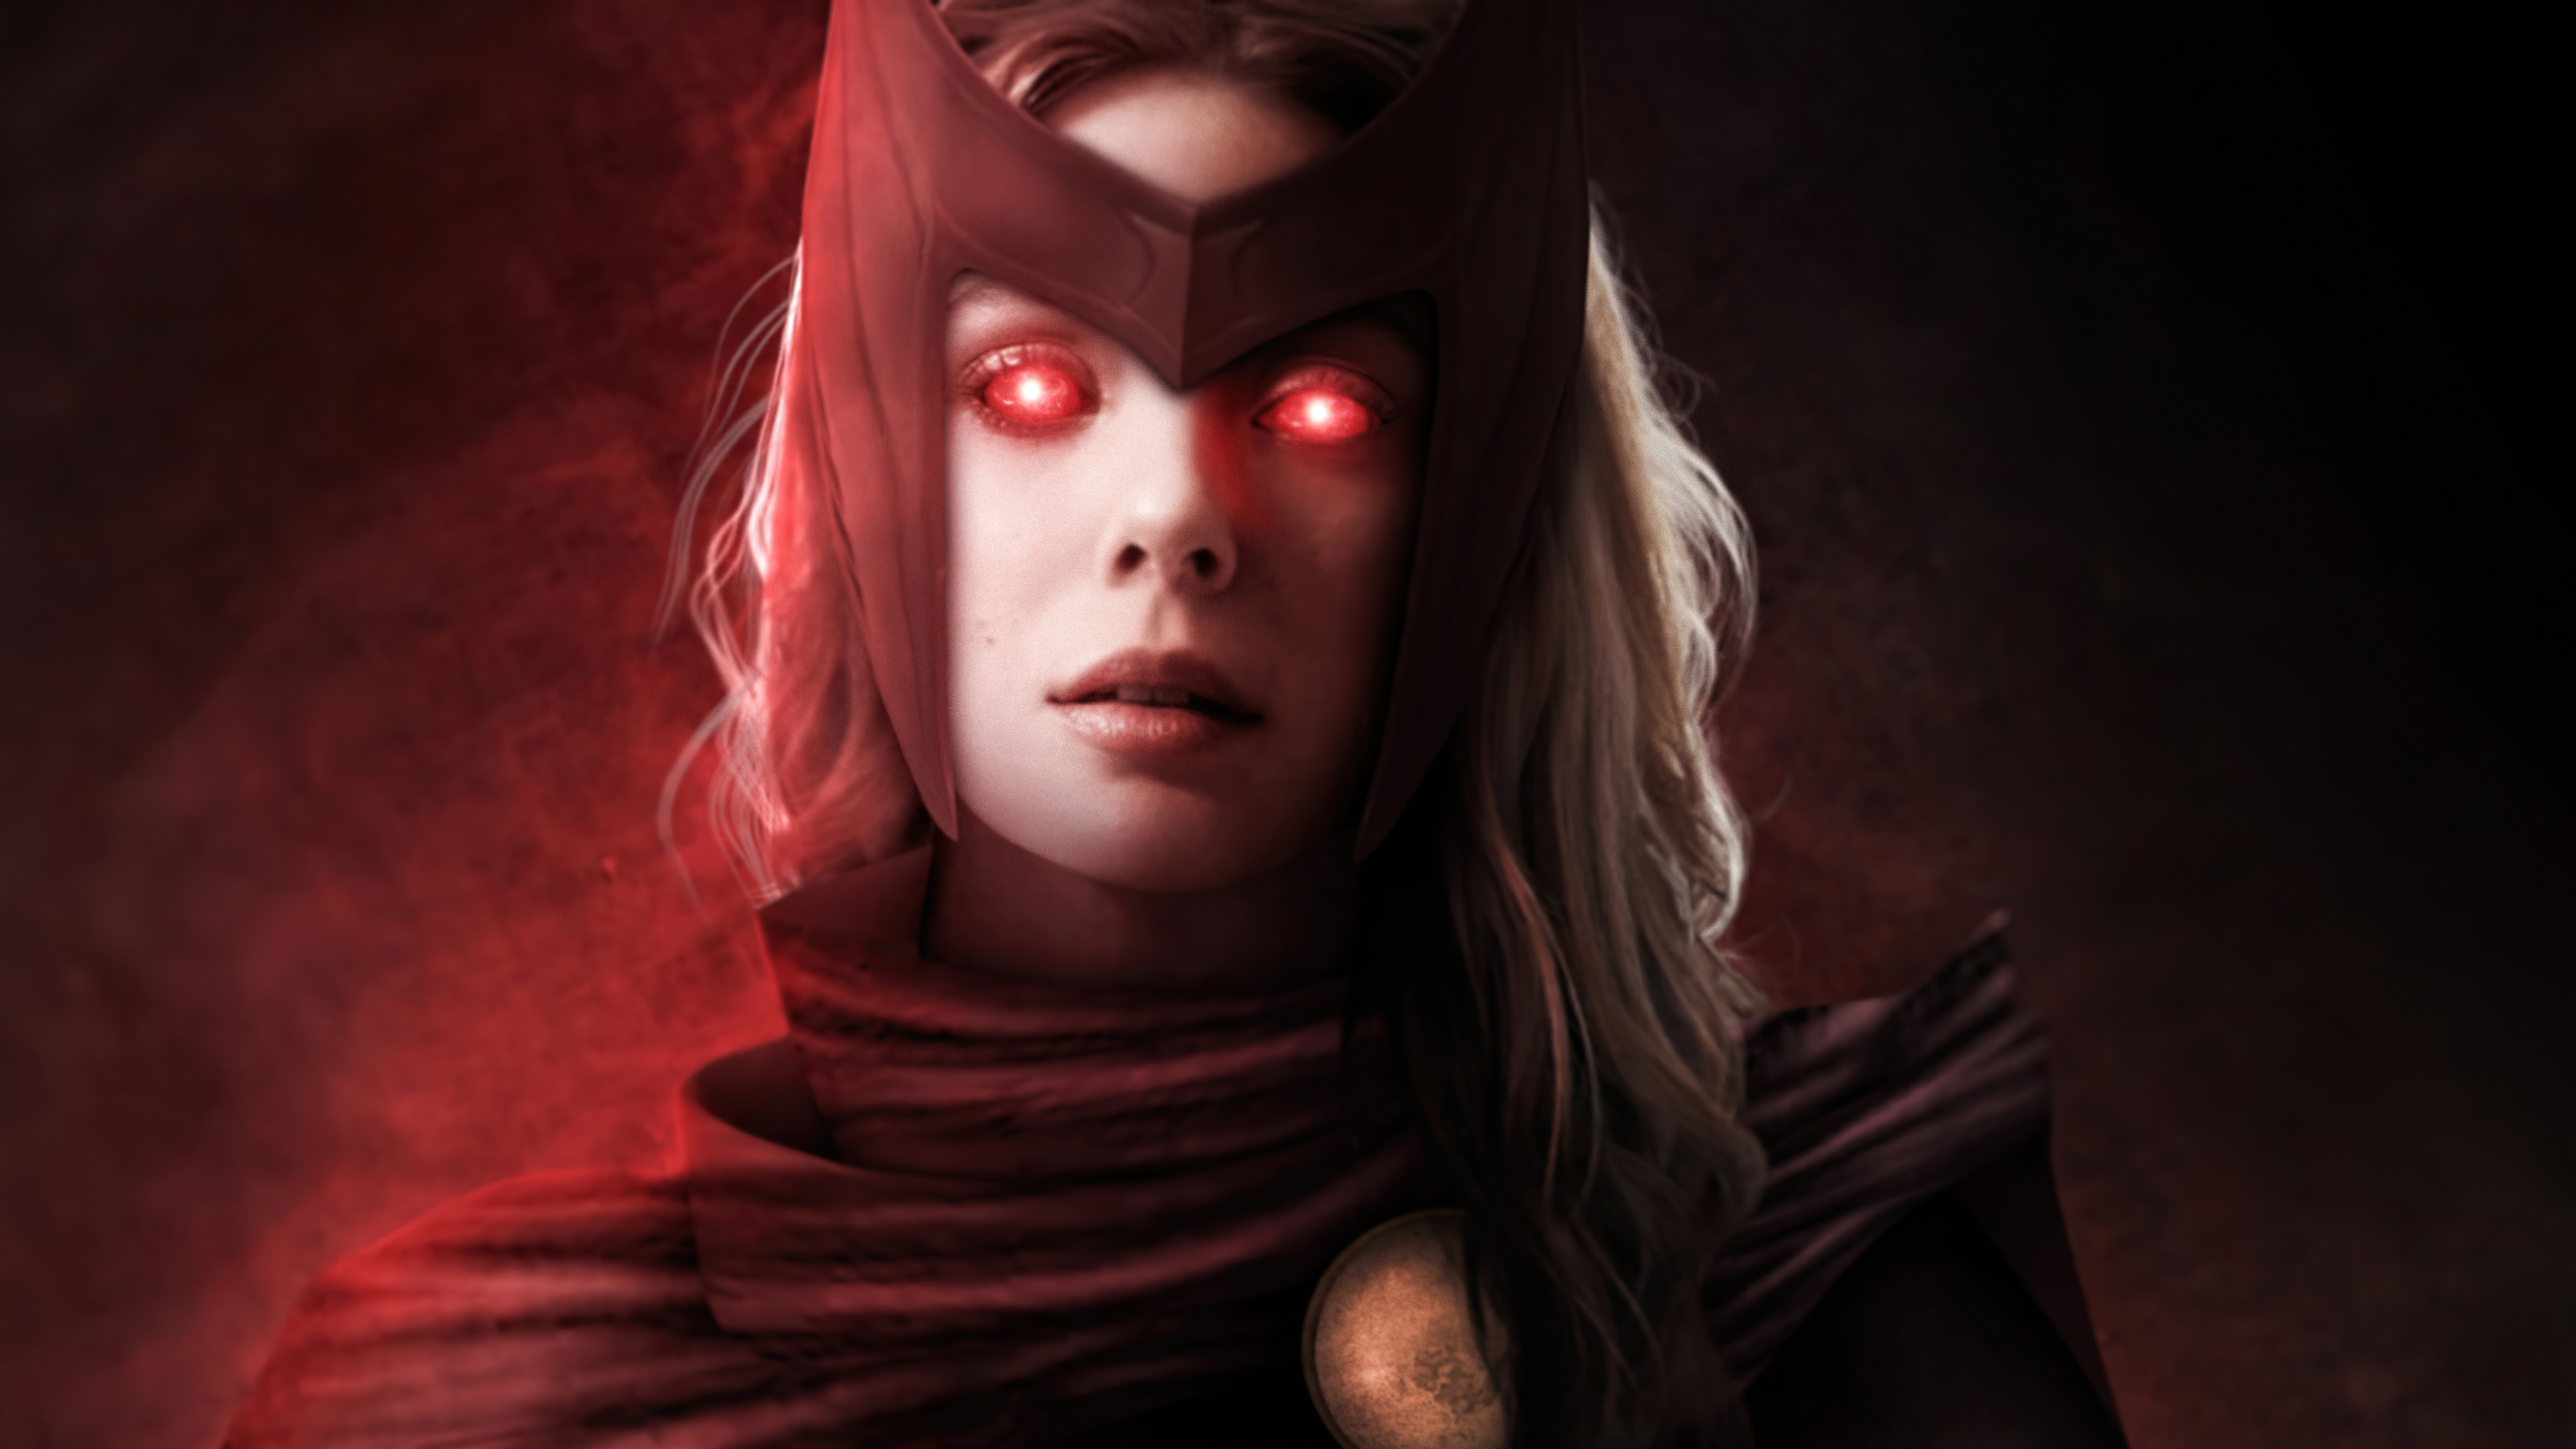 scarlet witch glowing red eyes 4k 1626910842 - Scarlet Witch Glowing Red Eyes 4k - Scarlet Witch Glowing Red Eyes 4k wallpapers